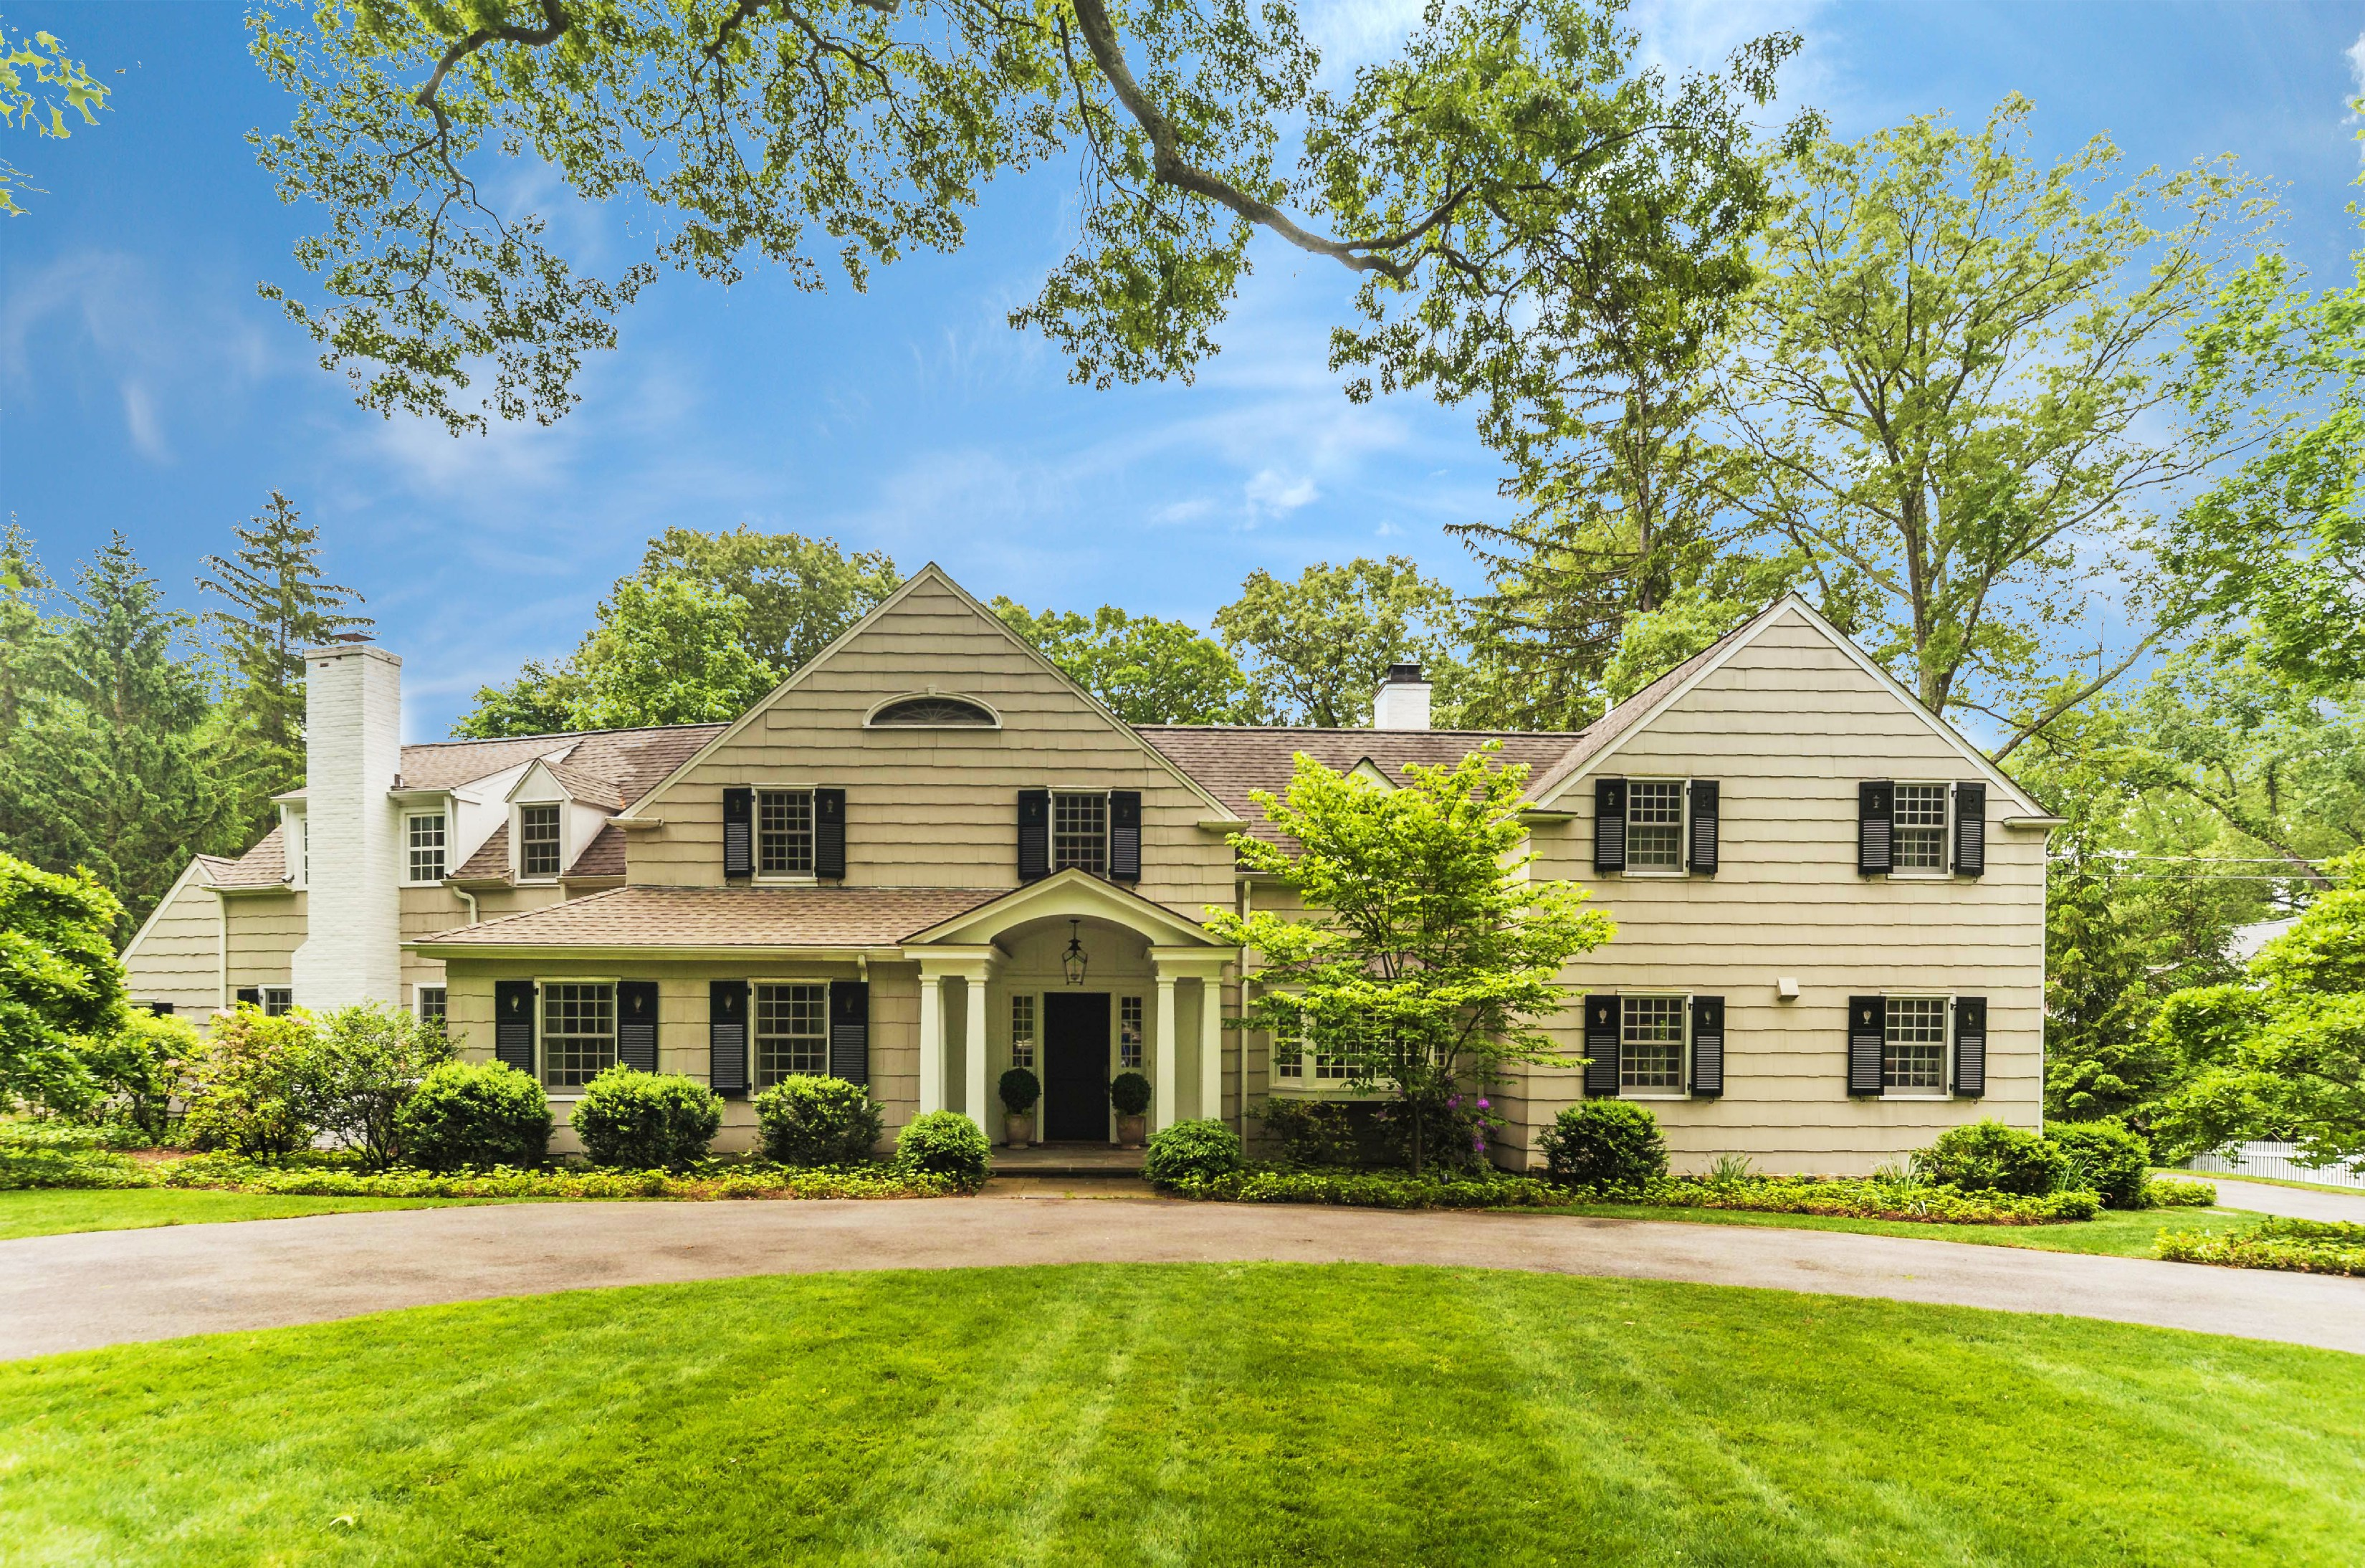 Maison unifamiliale pour l Vente à Classic Elegance 4 Point O Woods Road Darien, Connecticut 06820 États-Unis